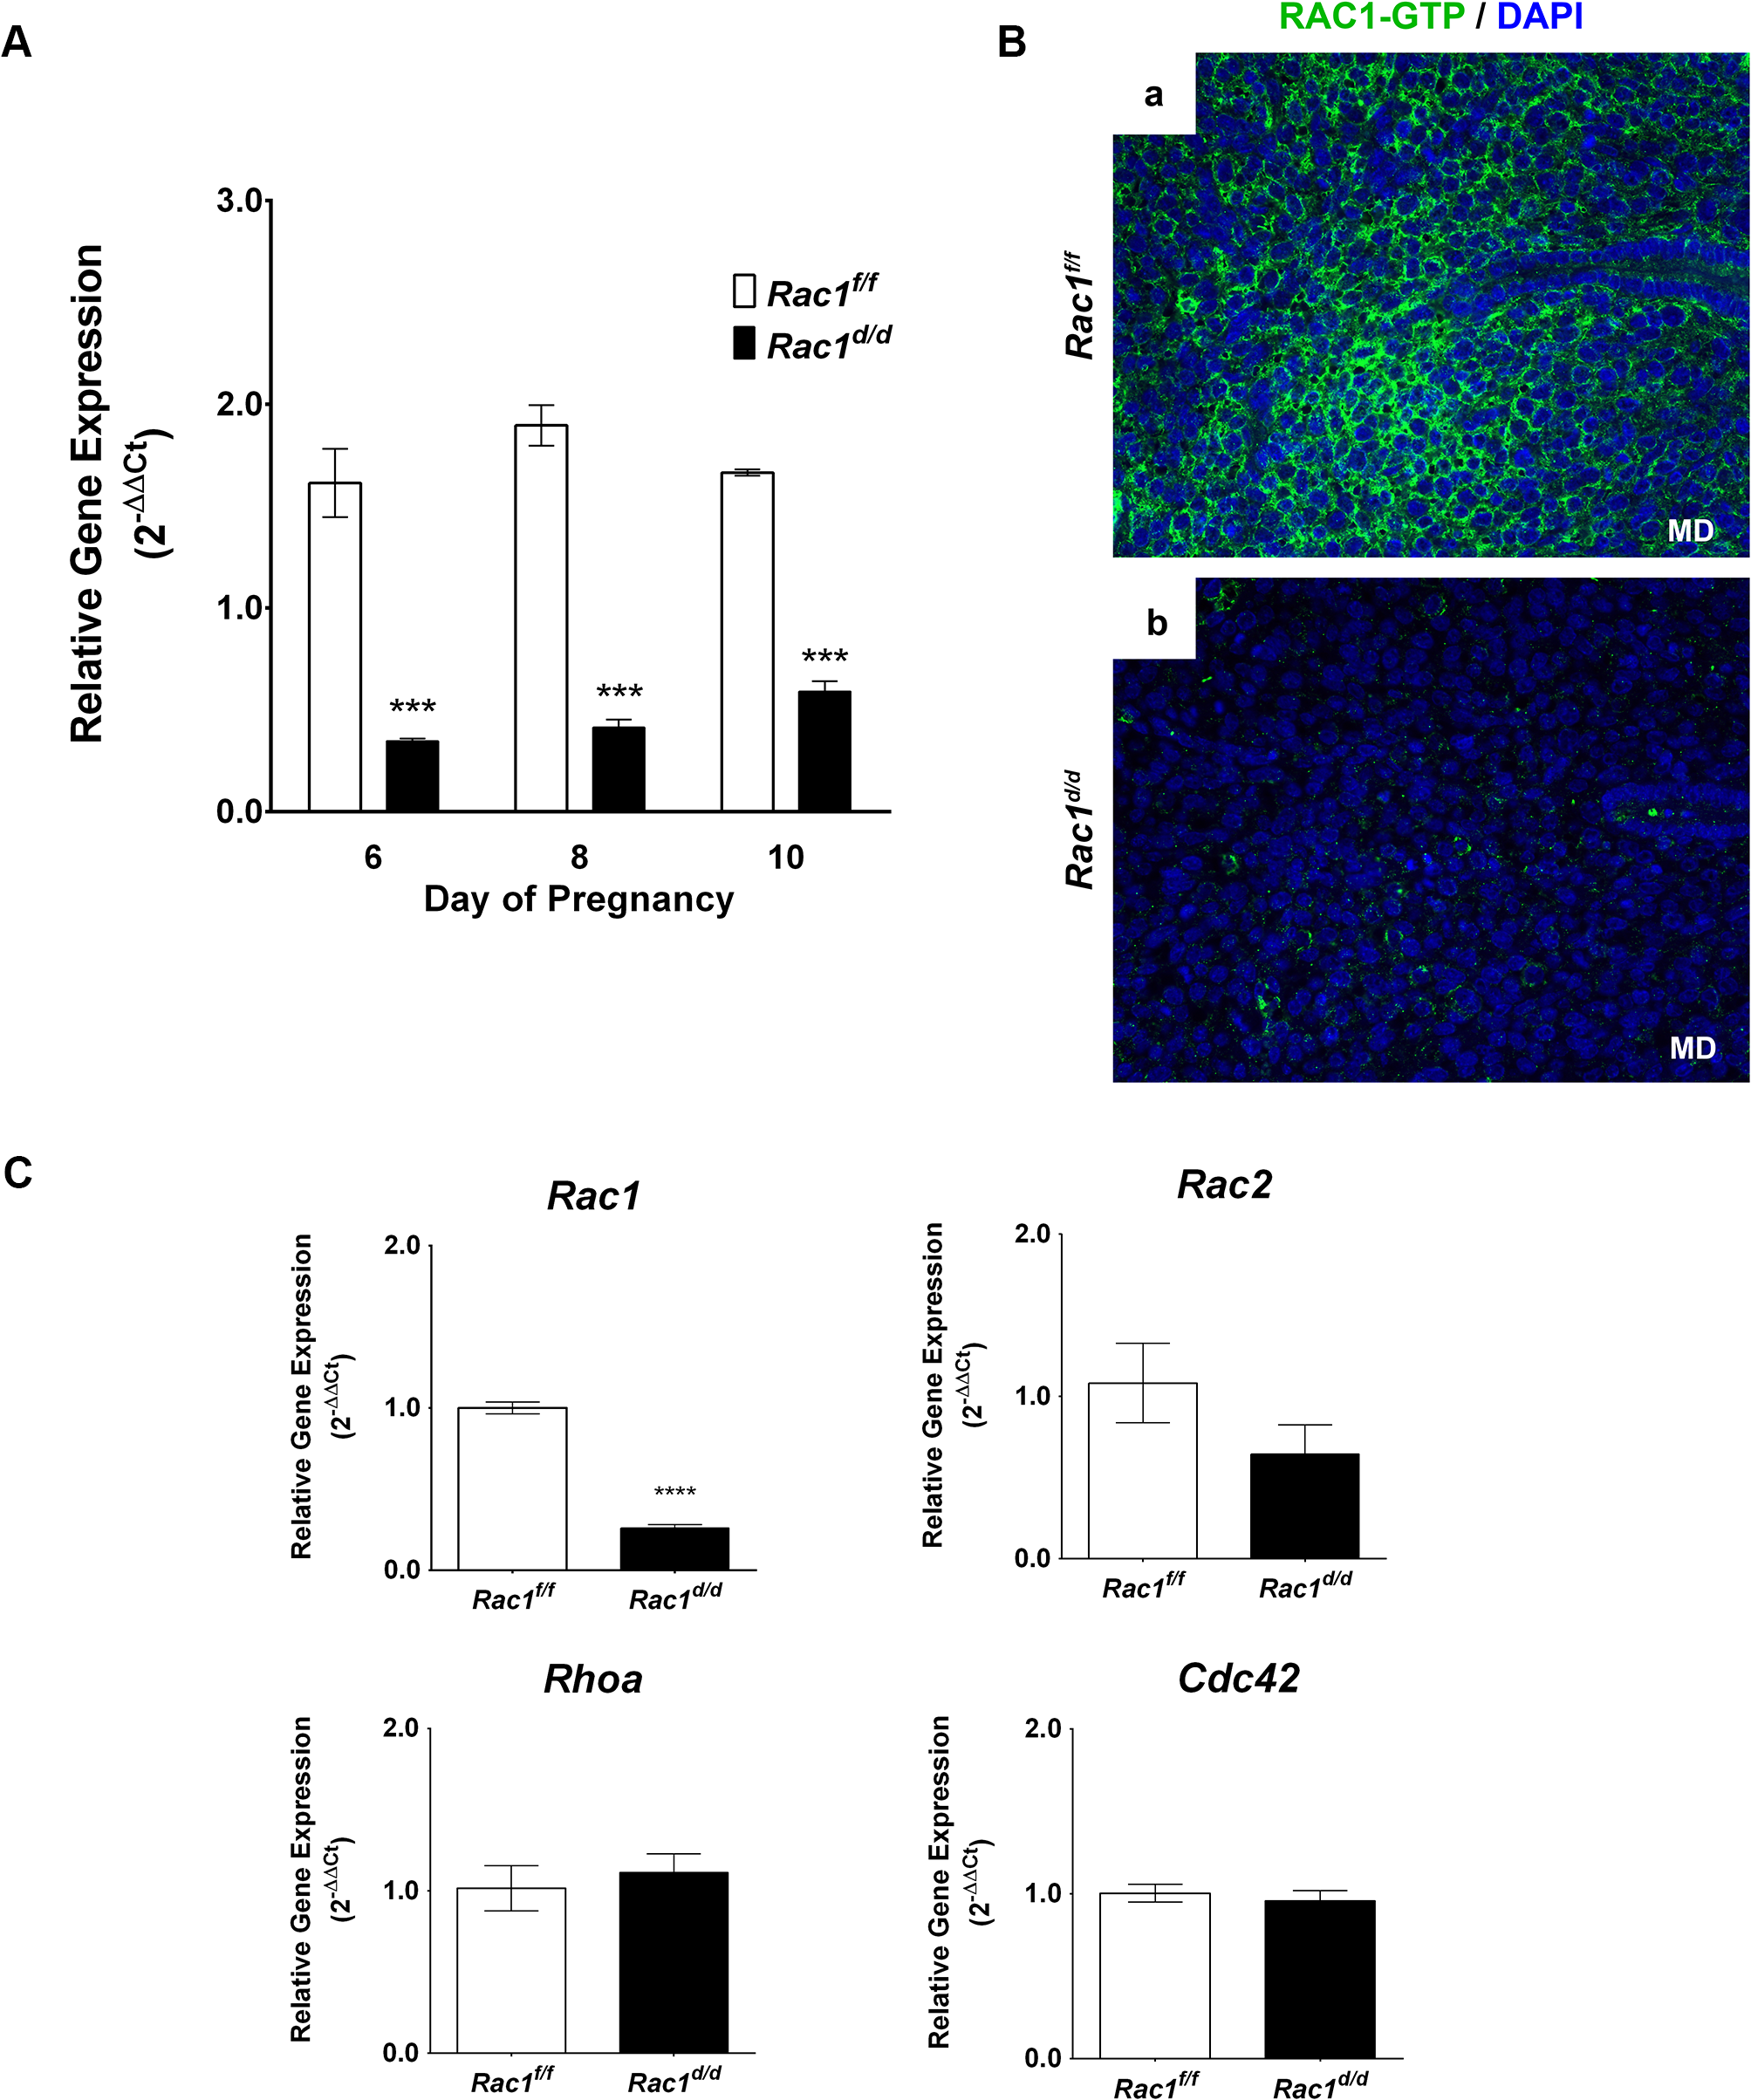 Loss of Rac1 expression in the uterus of <i>Rac1</i><sup><i>d/d</i></sup> mice.